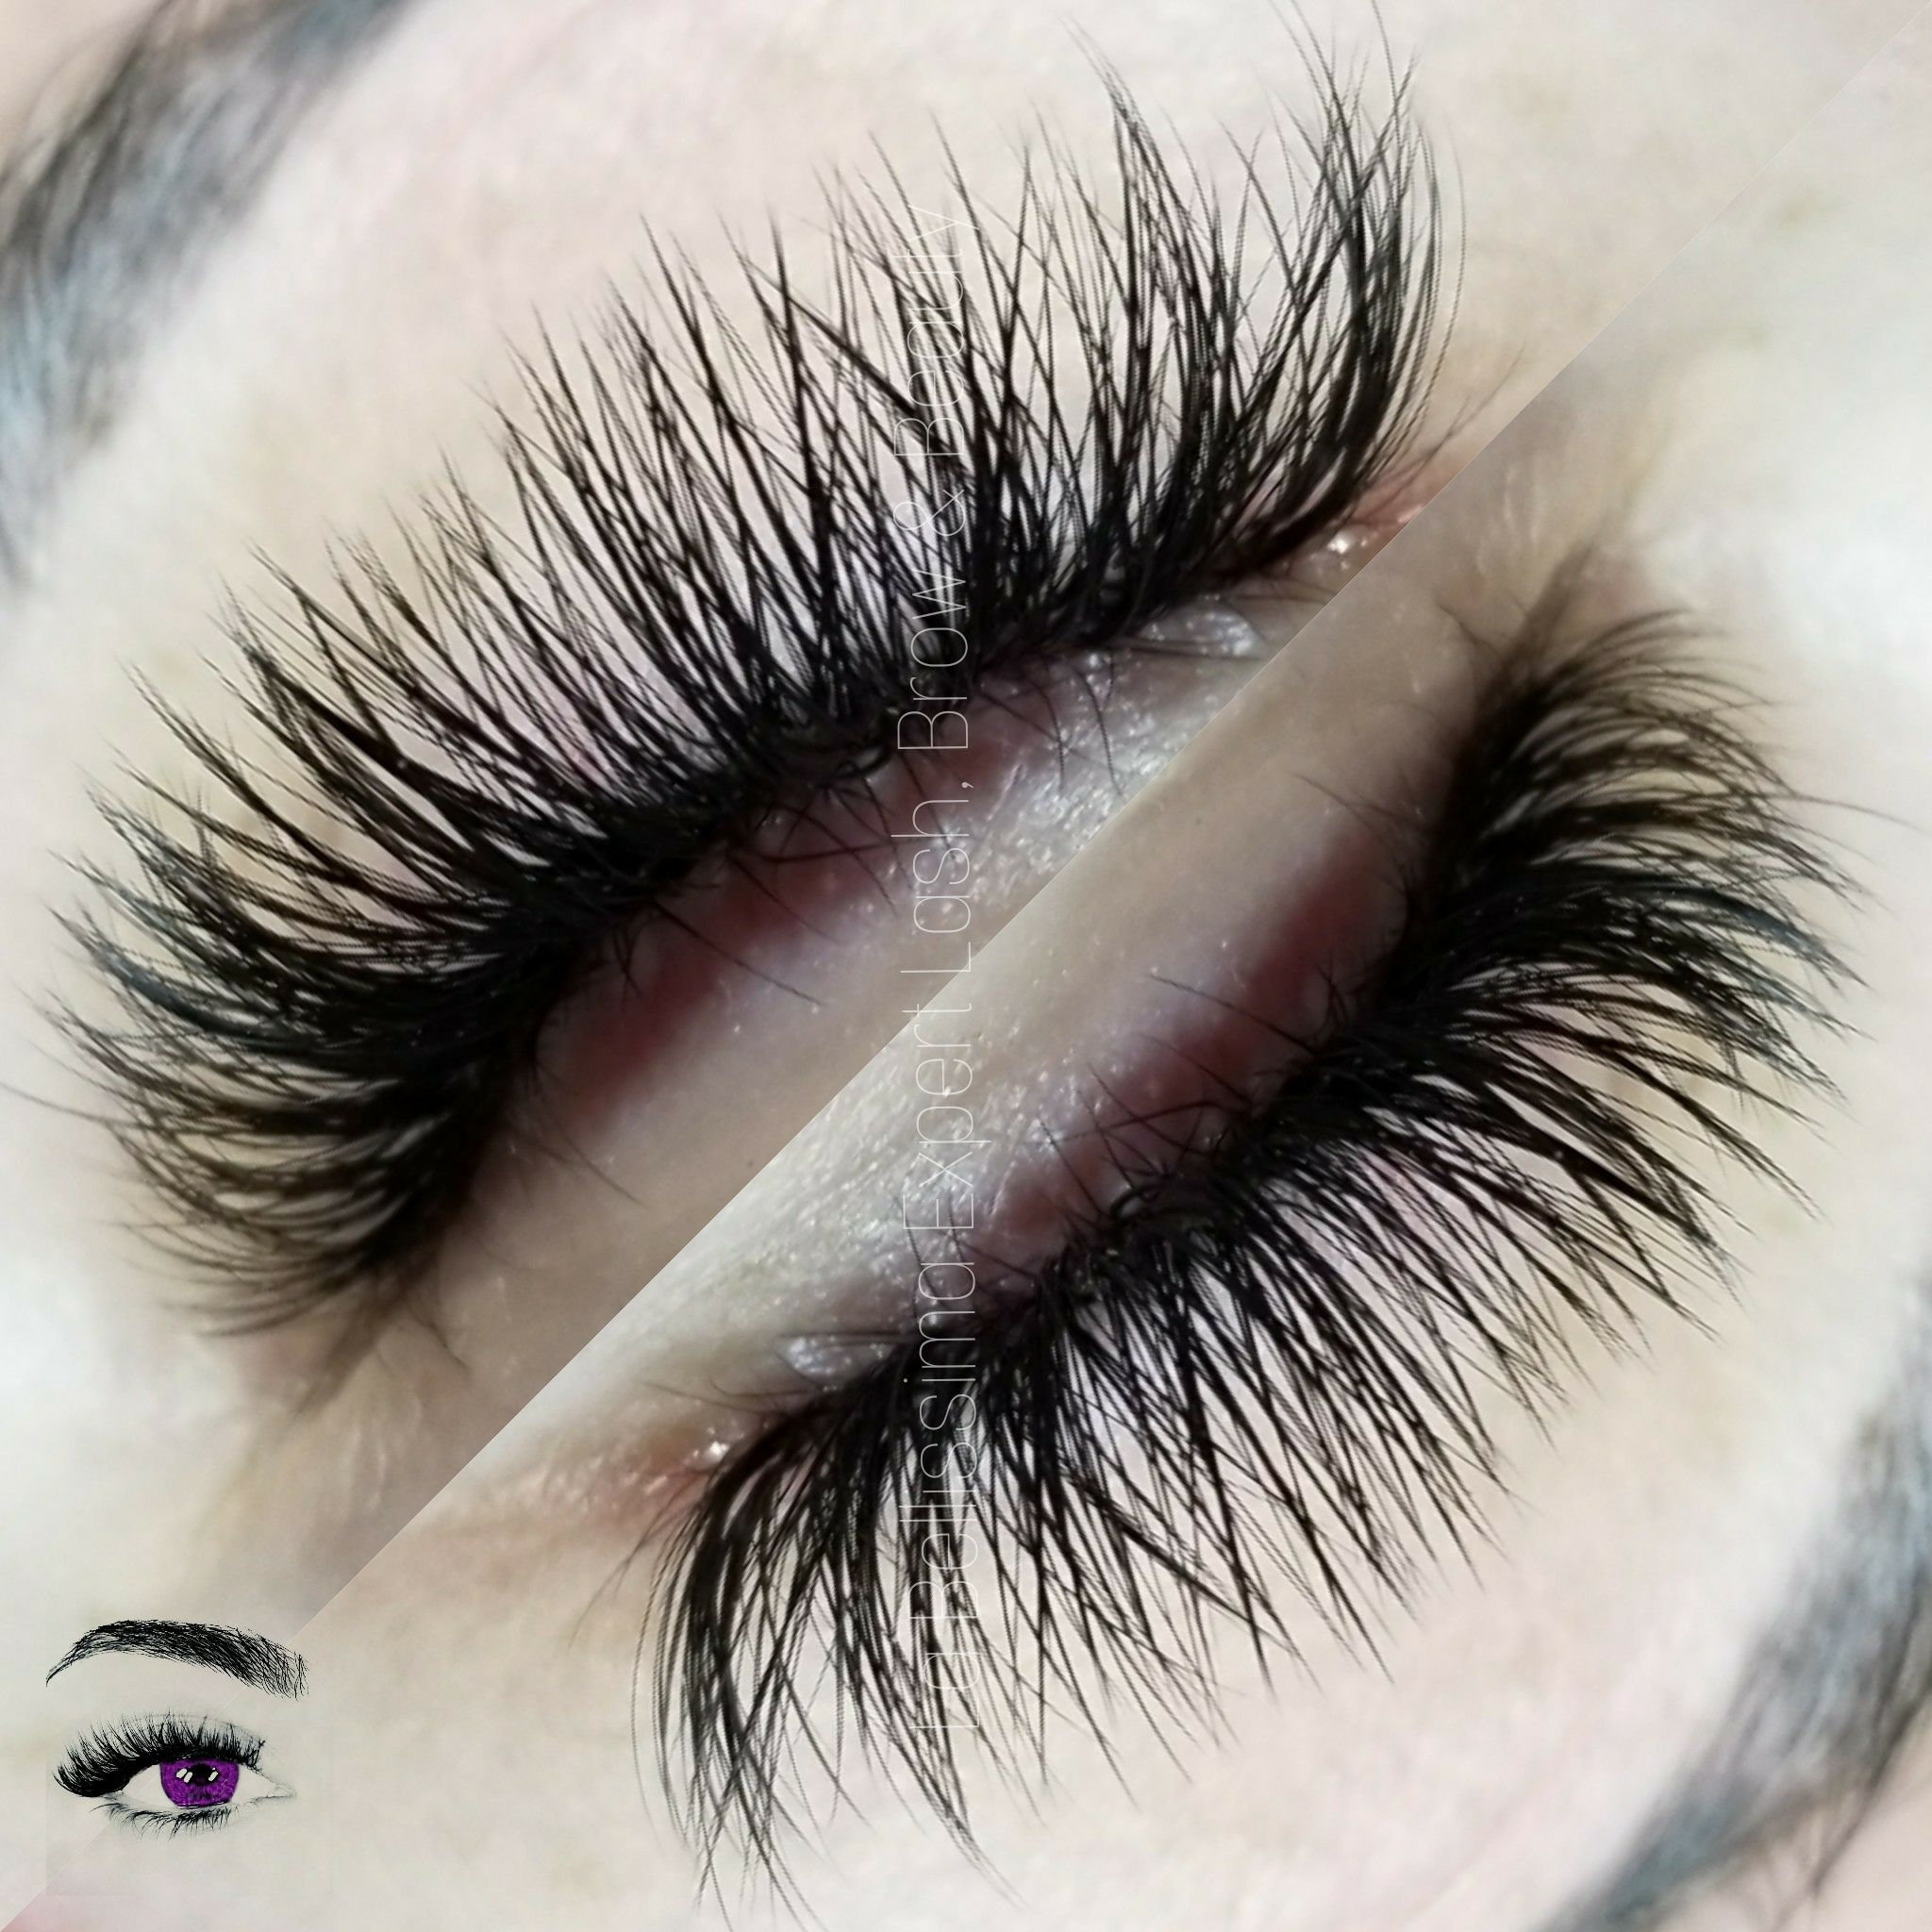 Russian Volume Eyelash Extensions Ooh La La Volumelashes